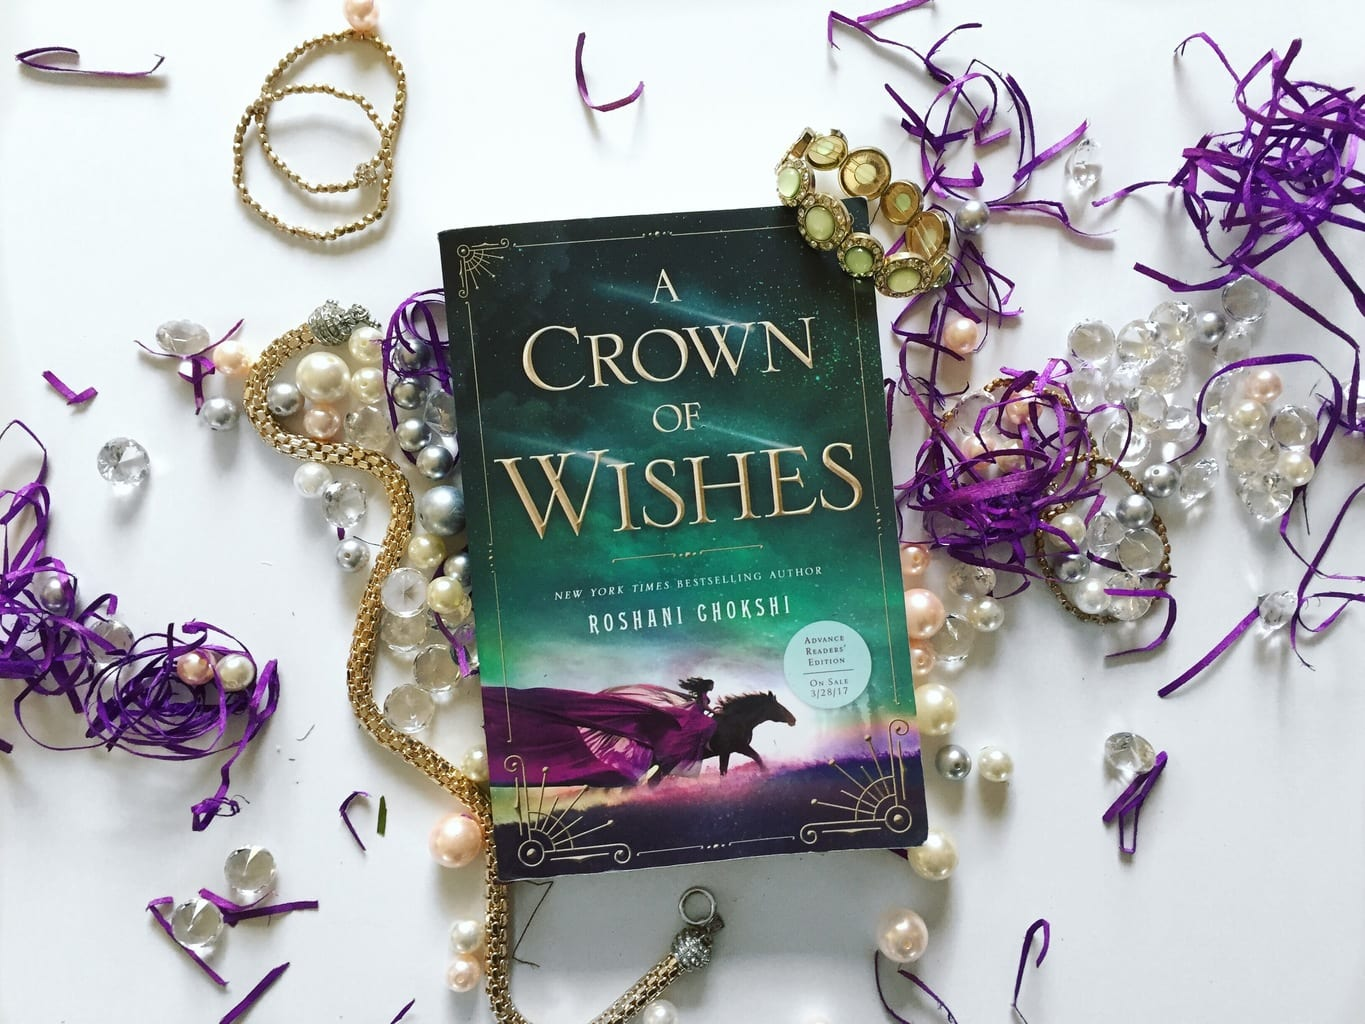 """A Crown of Wishes"" Left Me in a Magical Haze"